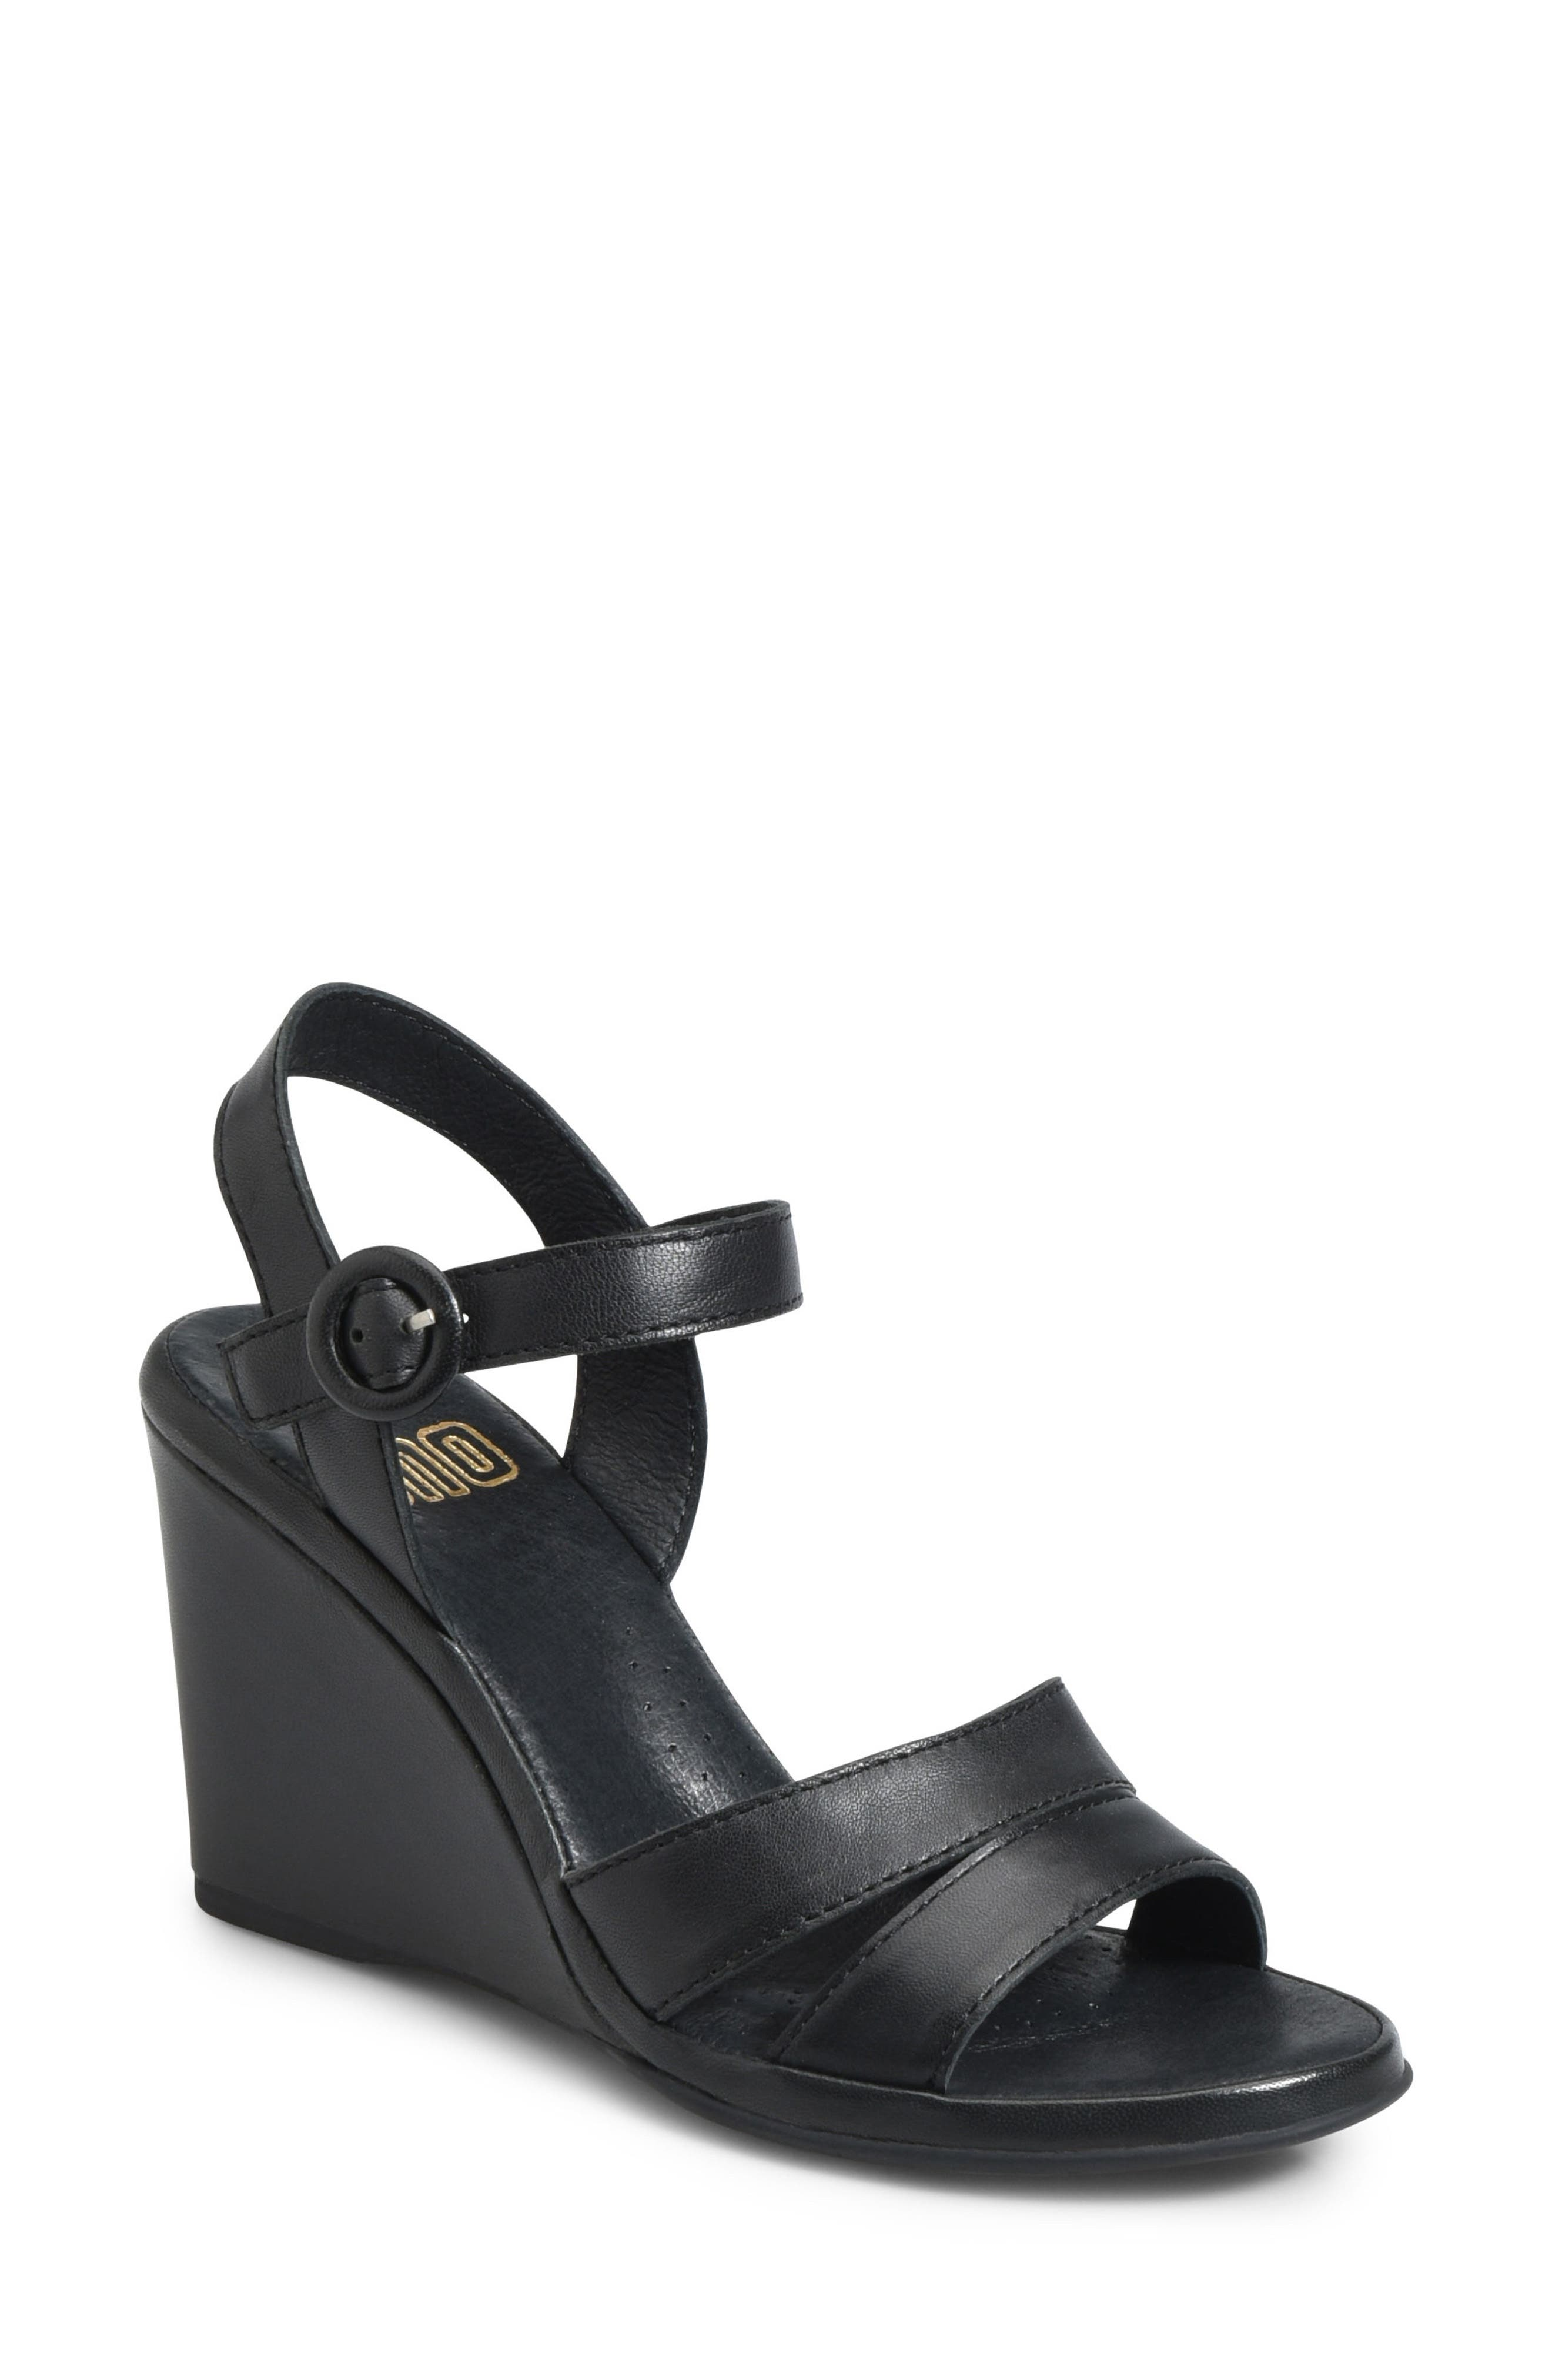 ONO Hydro Wedge Sandal, Main, color, BLACK LEATHER